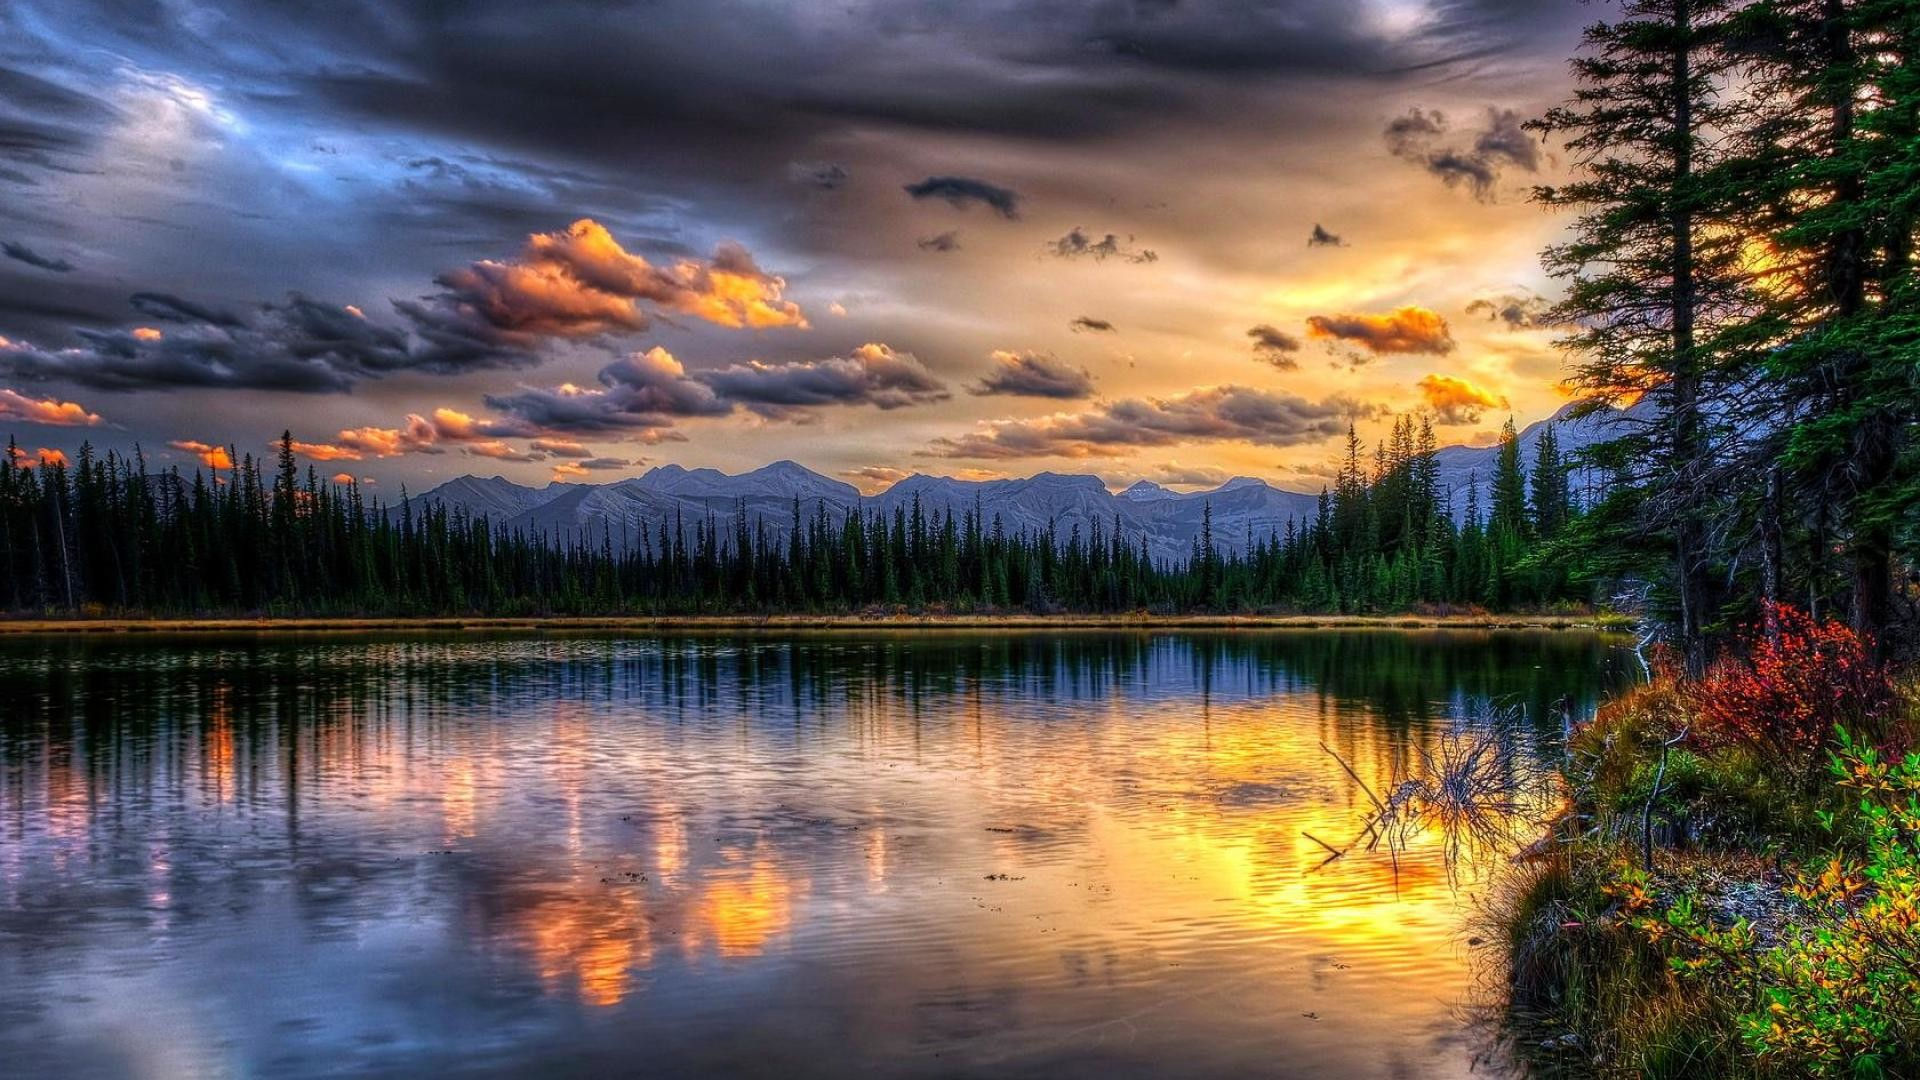 awesome natural wallpaper. darkness clouds beautiful landscape backgrounds.  cloudy weather natural image